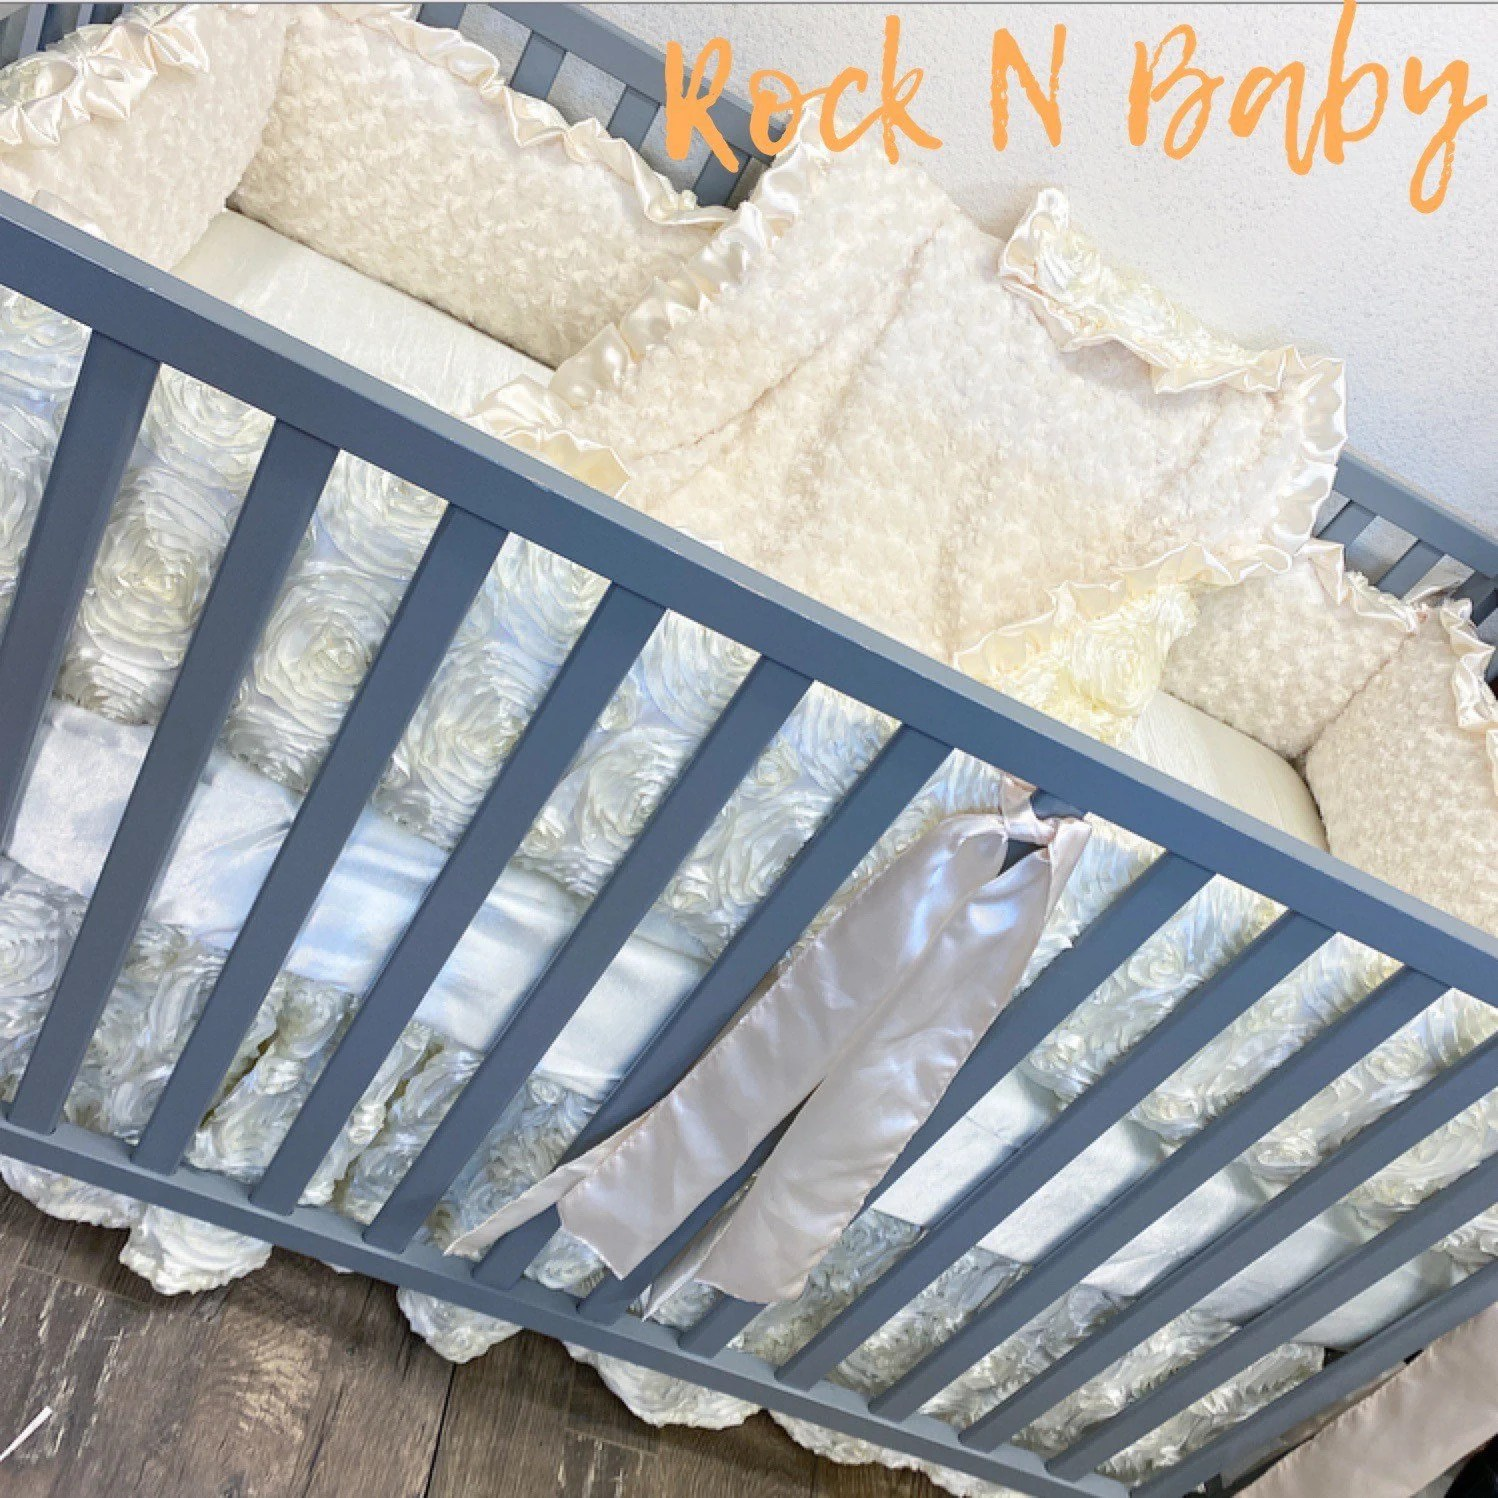 grace madison designs by rock n baby